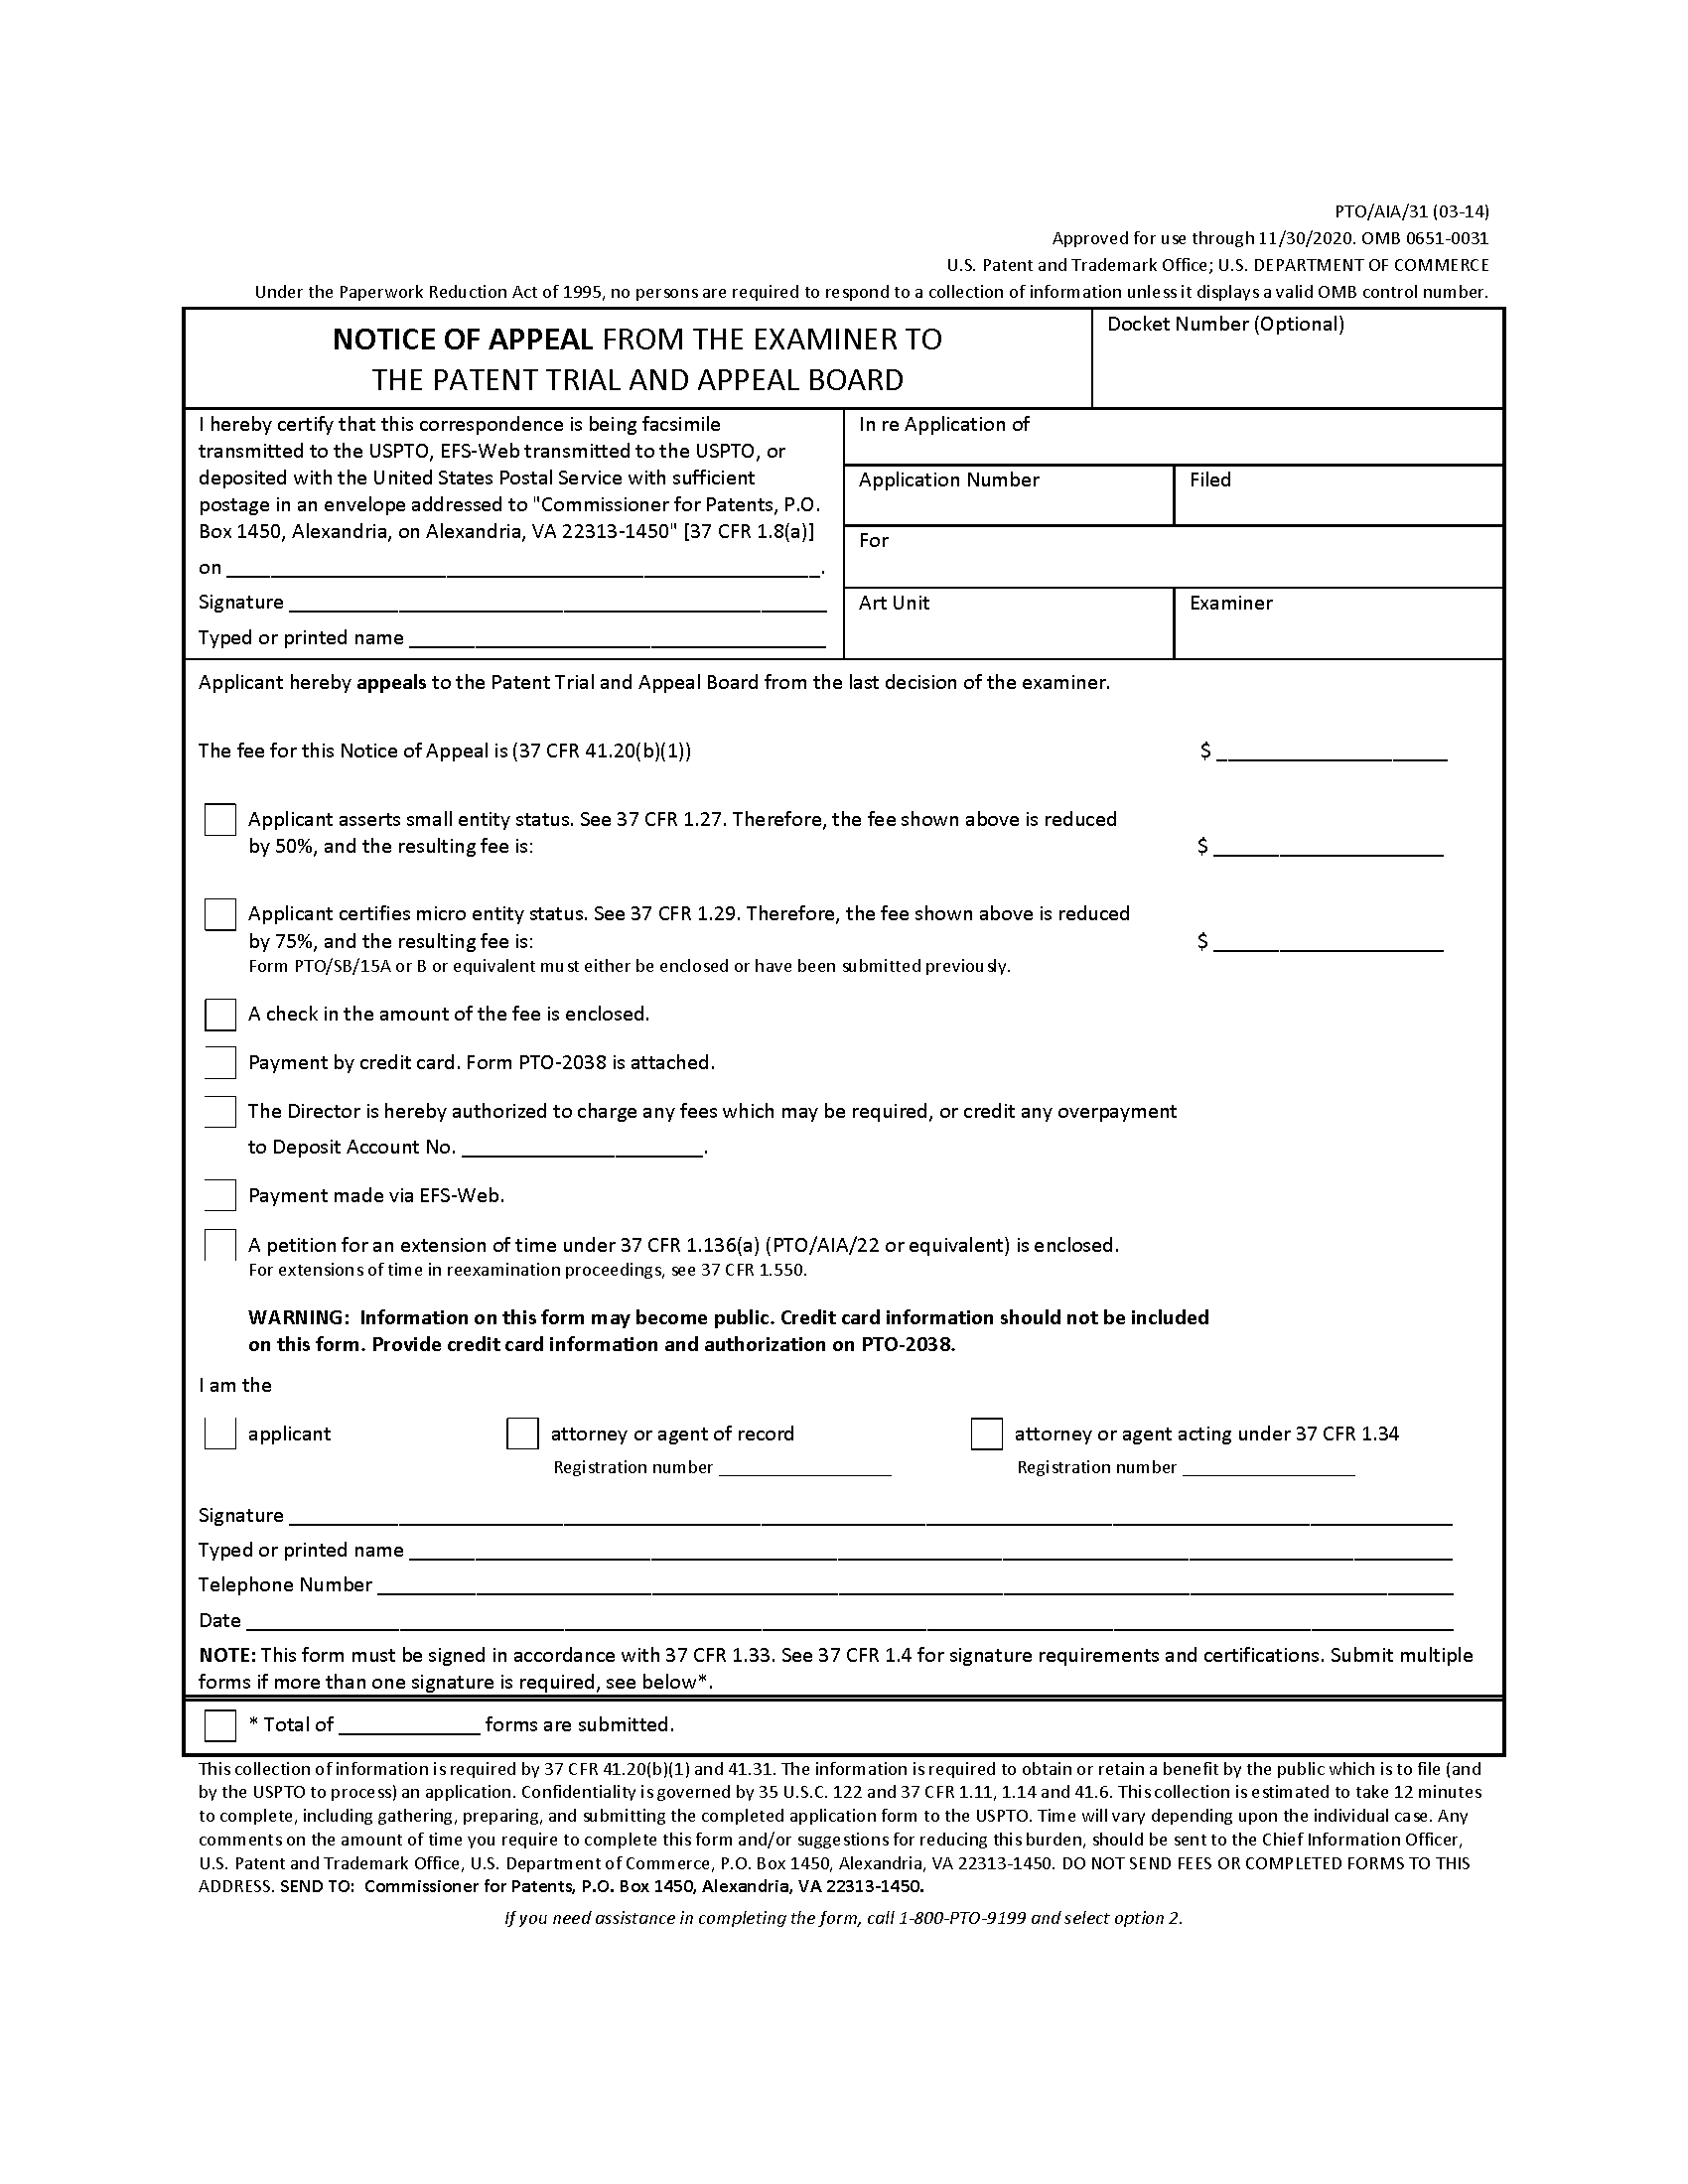 Mpep 1204 Notice Of Appeal Jan 2018 Bitlaw